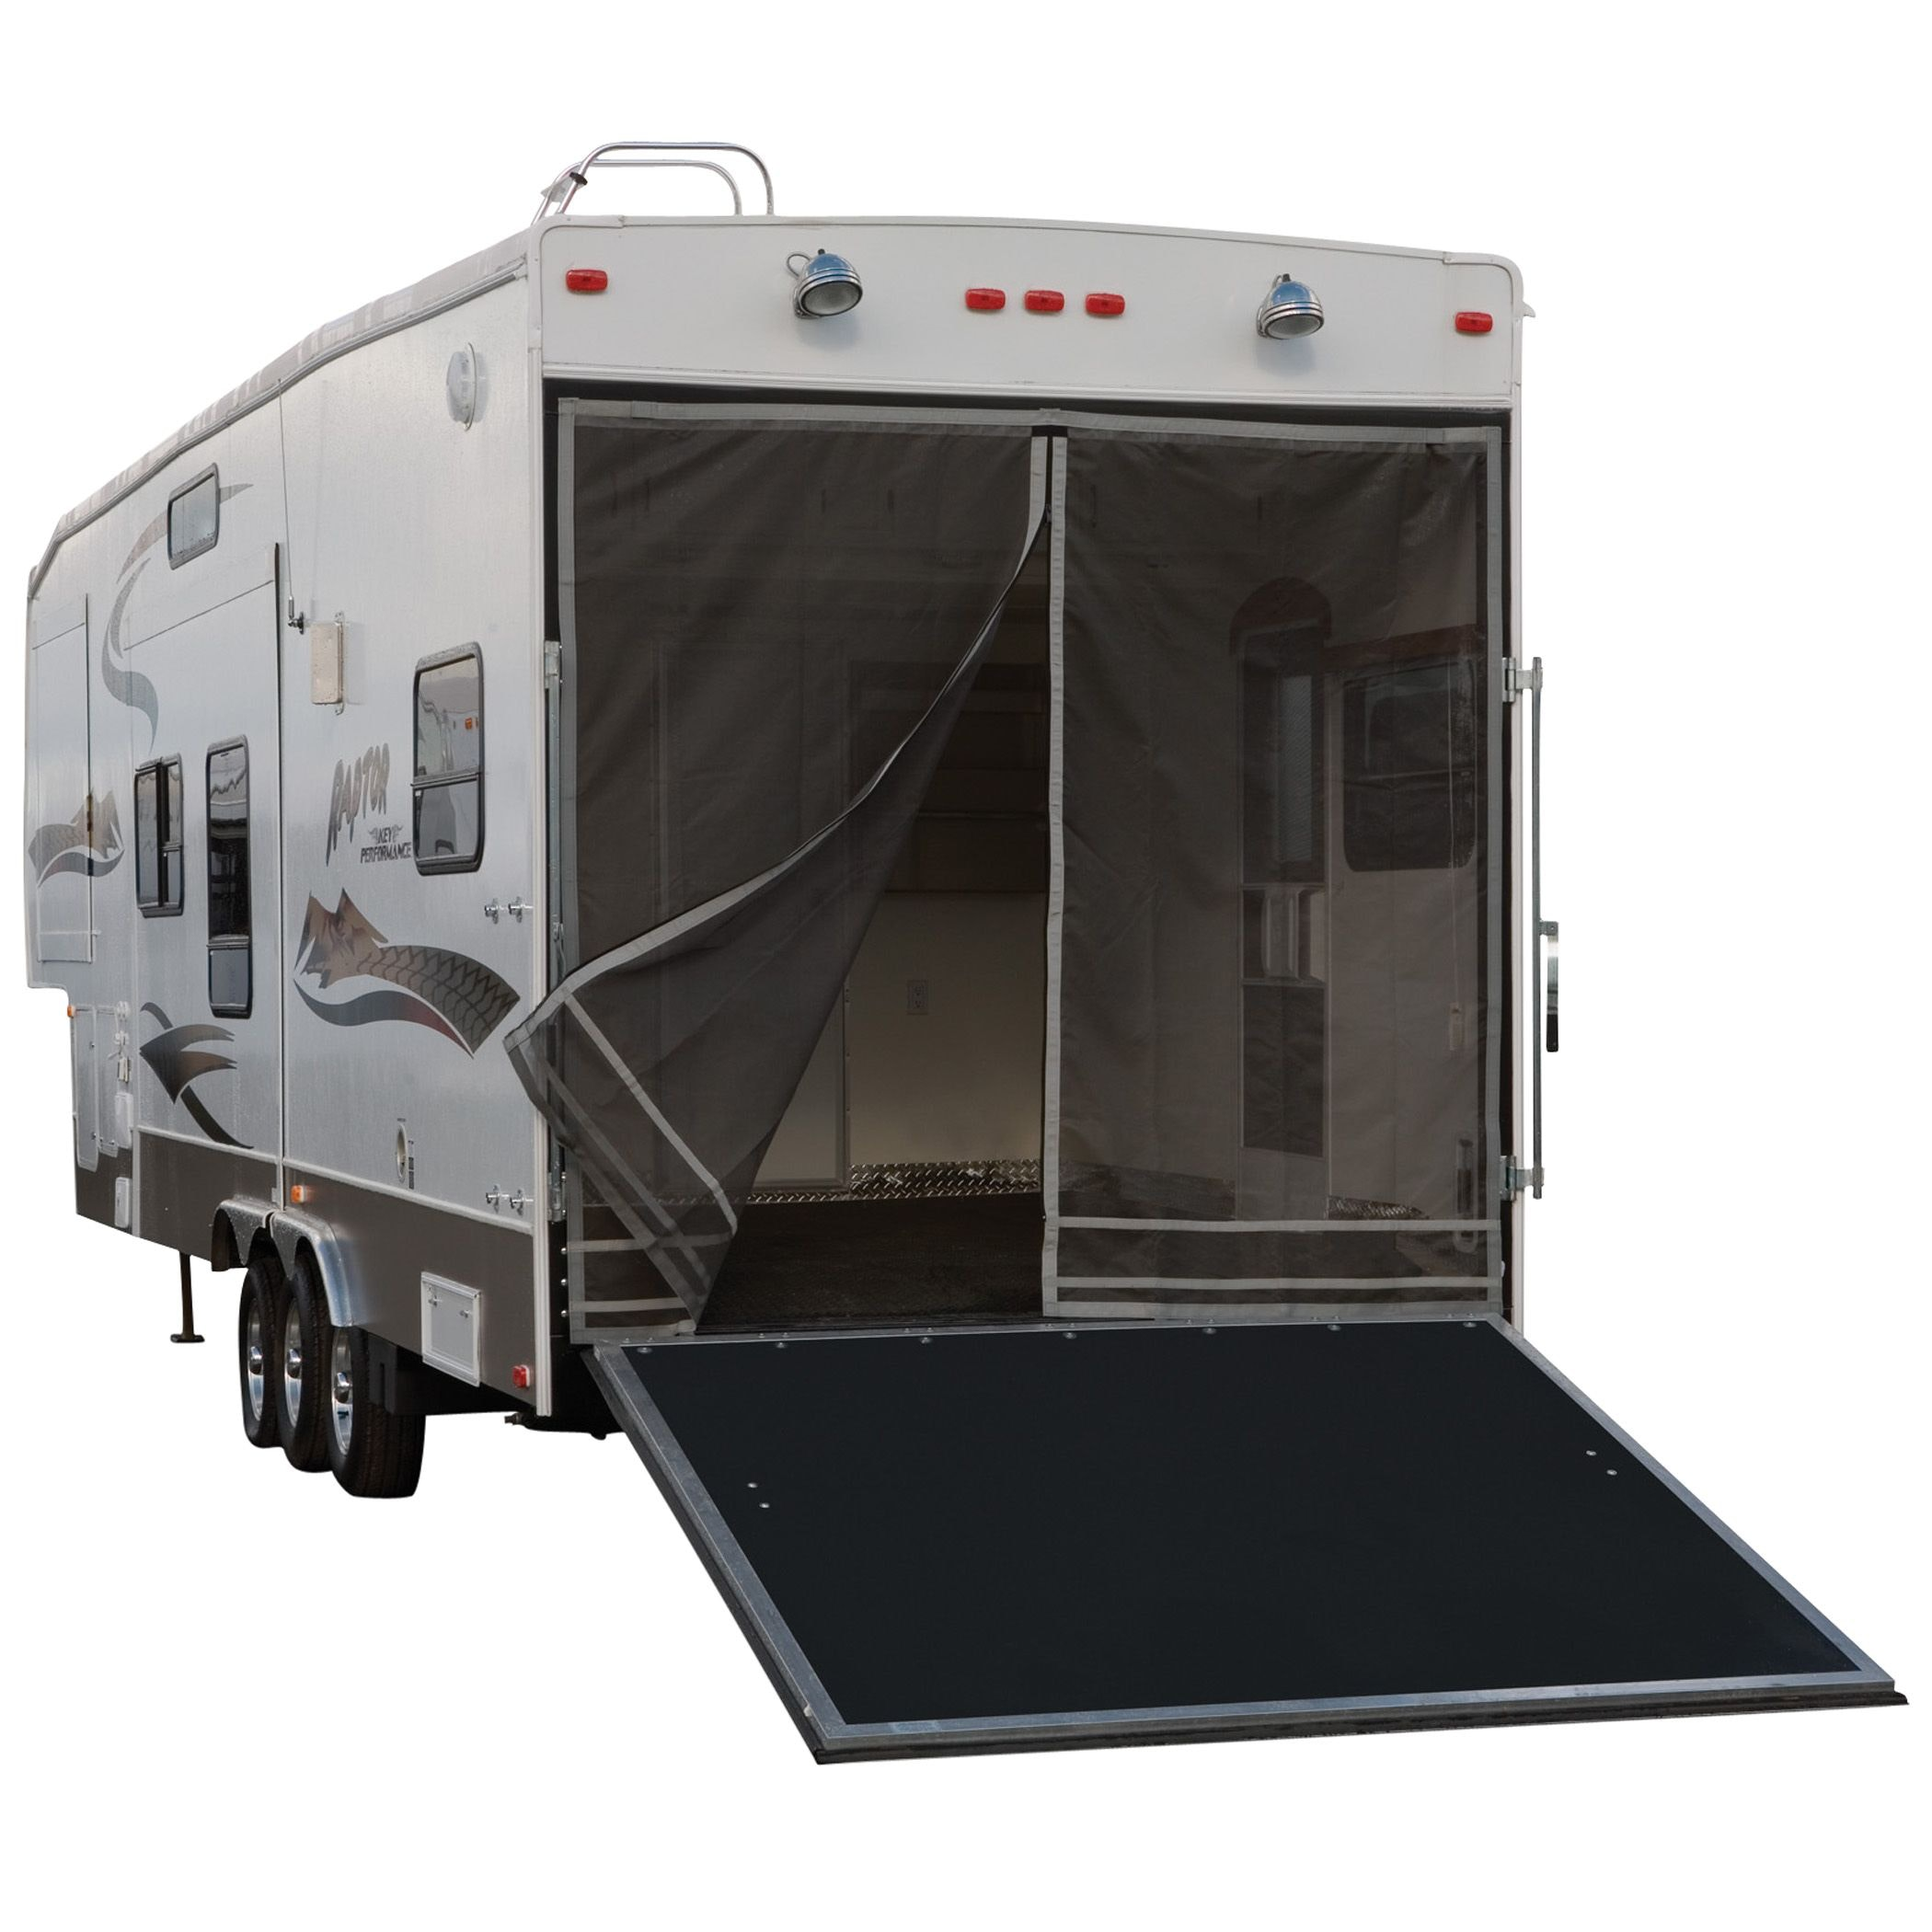 Main Product Image for RV Toy Hauler Screen